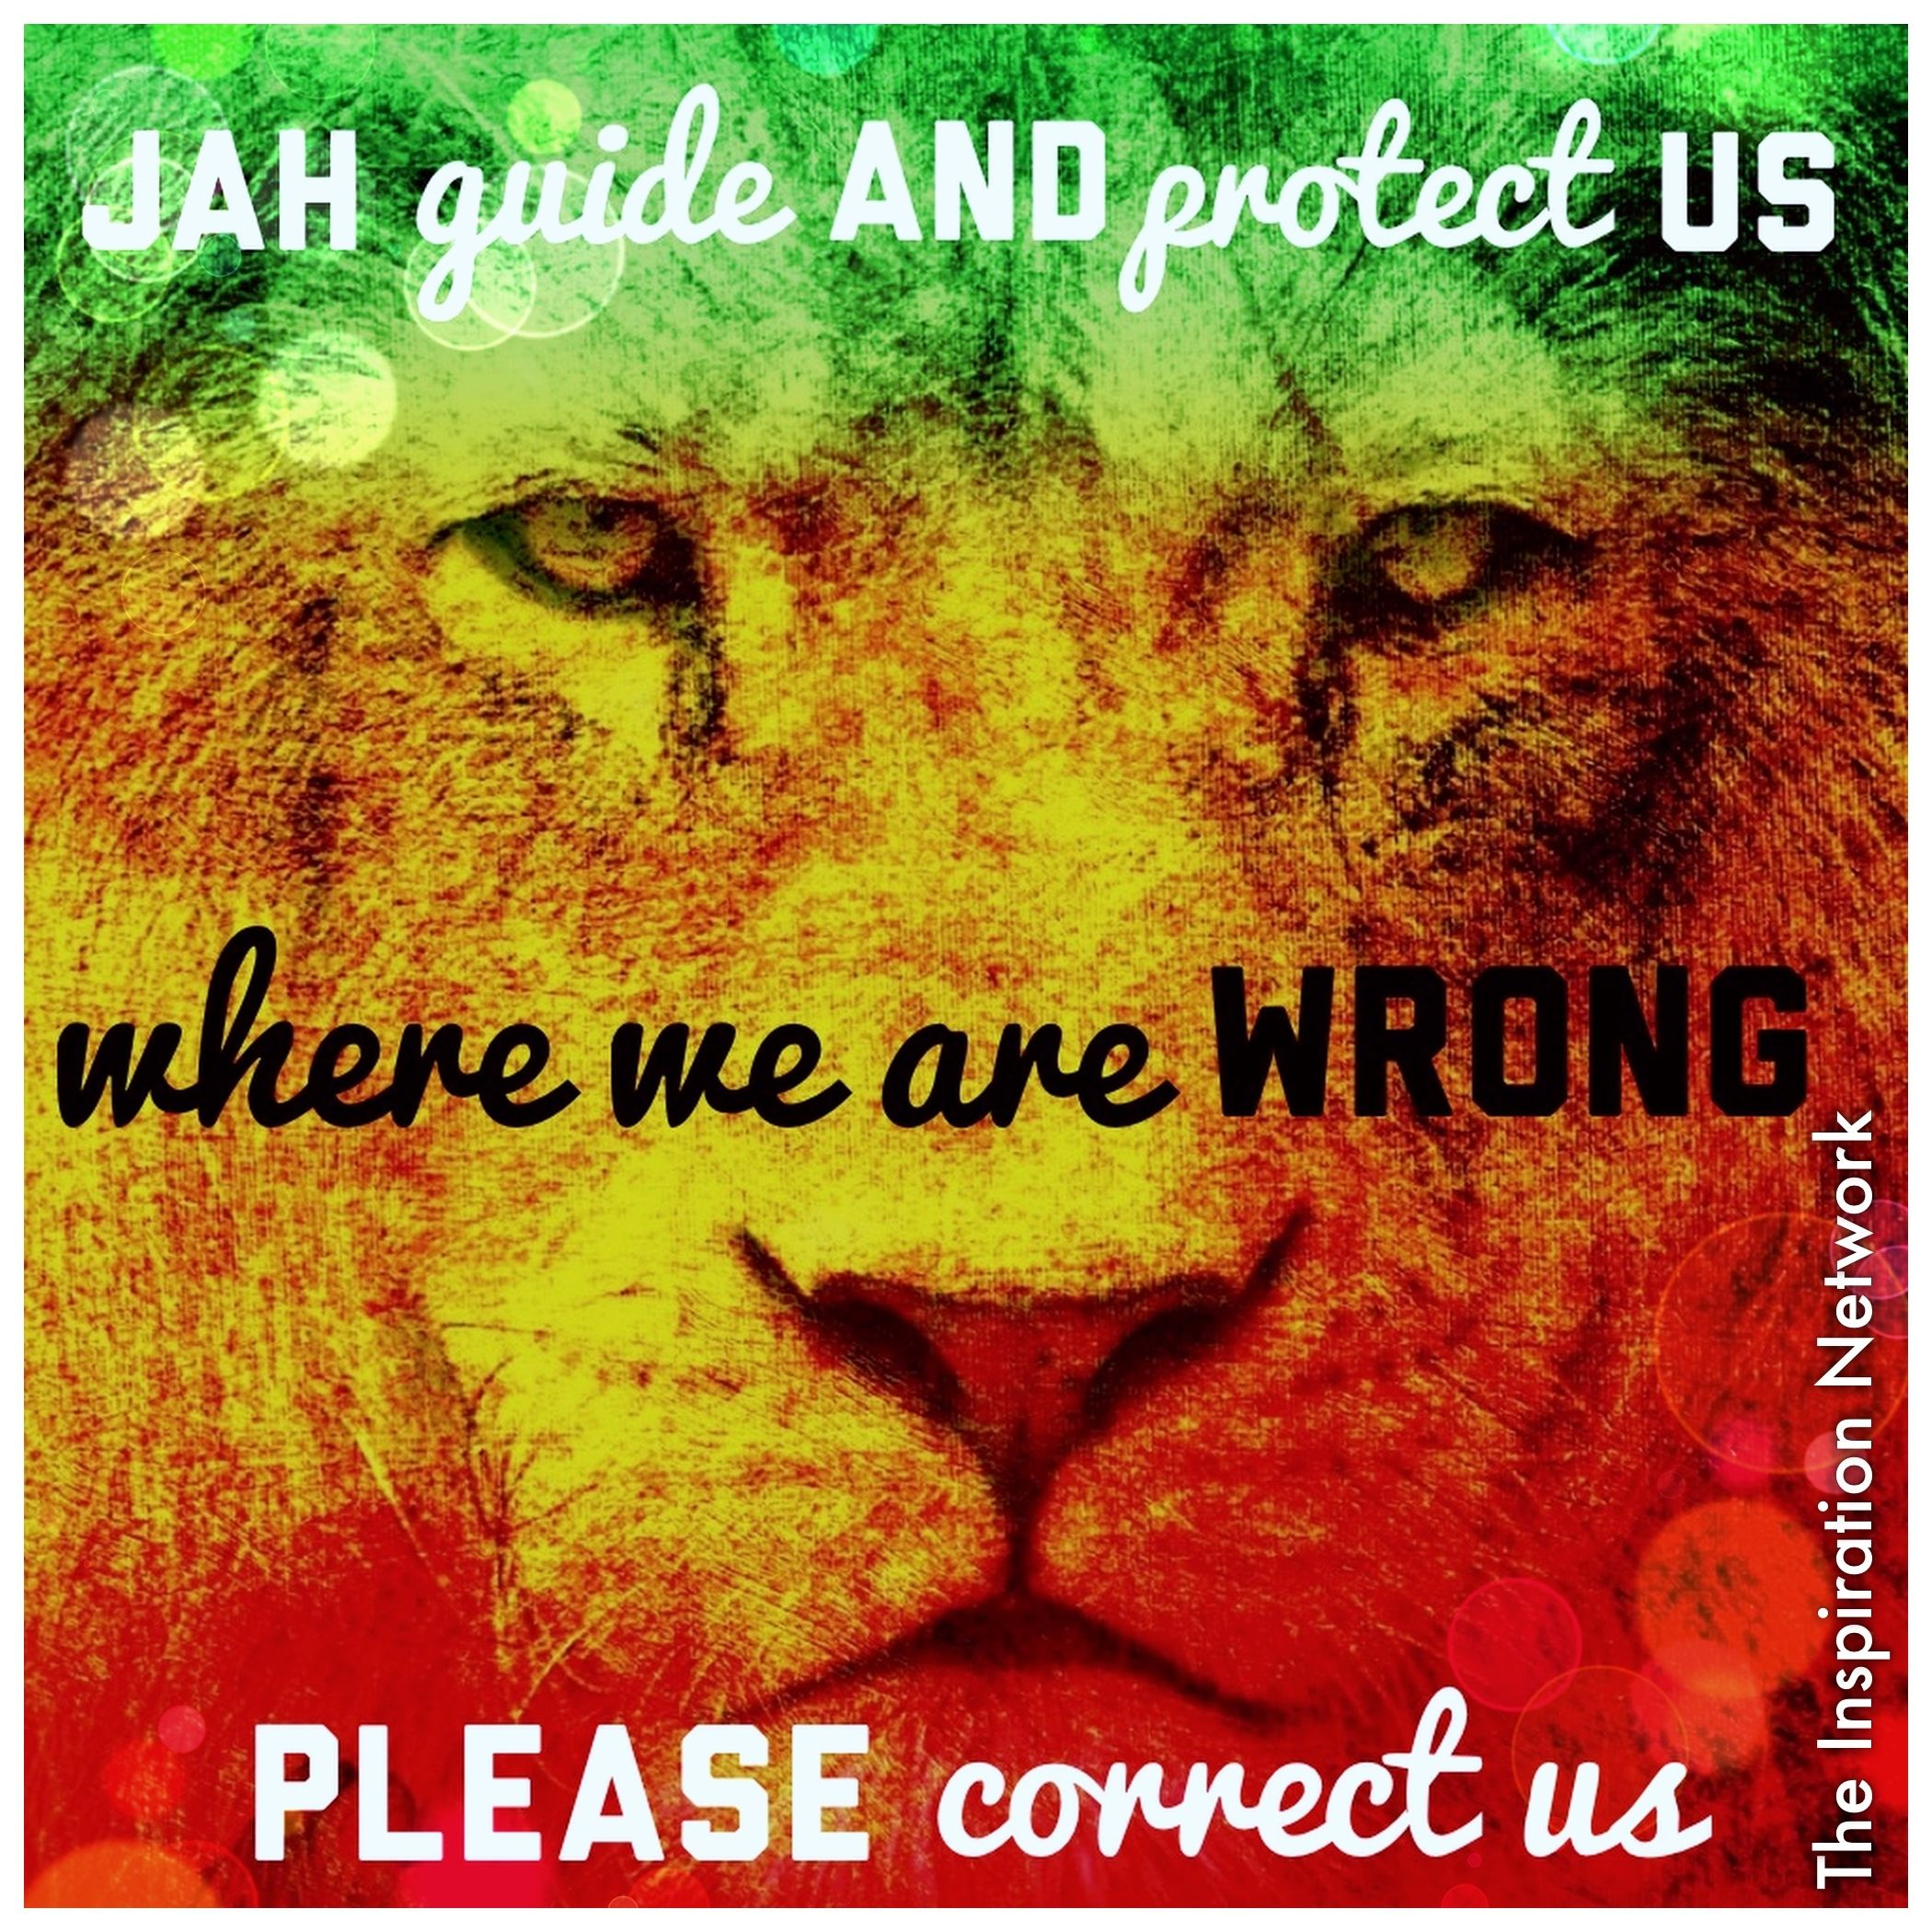 """Jah guide and protect us. When we are wrong, please"